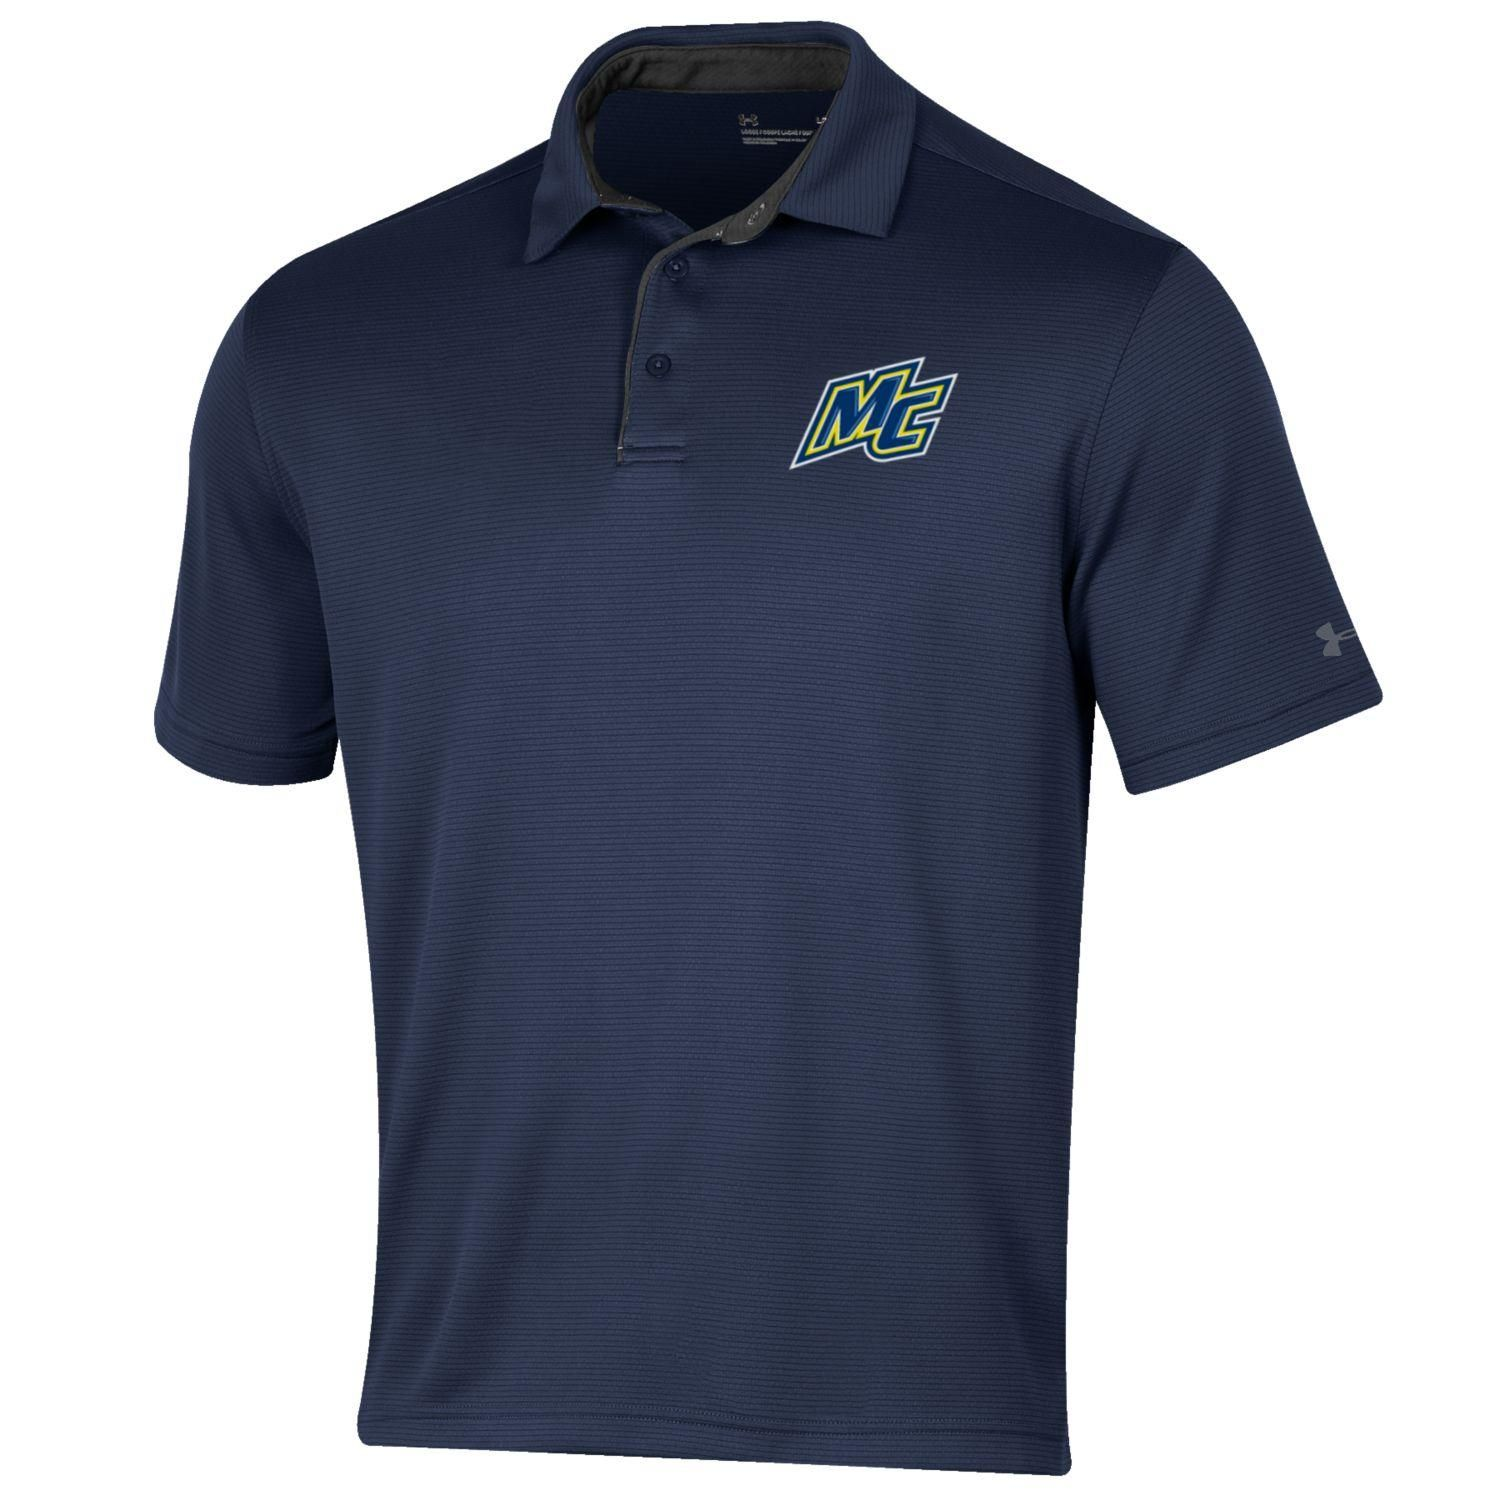 MC Navy Tech Polo Tee